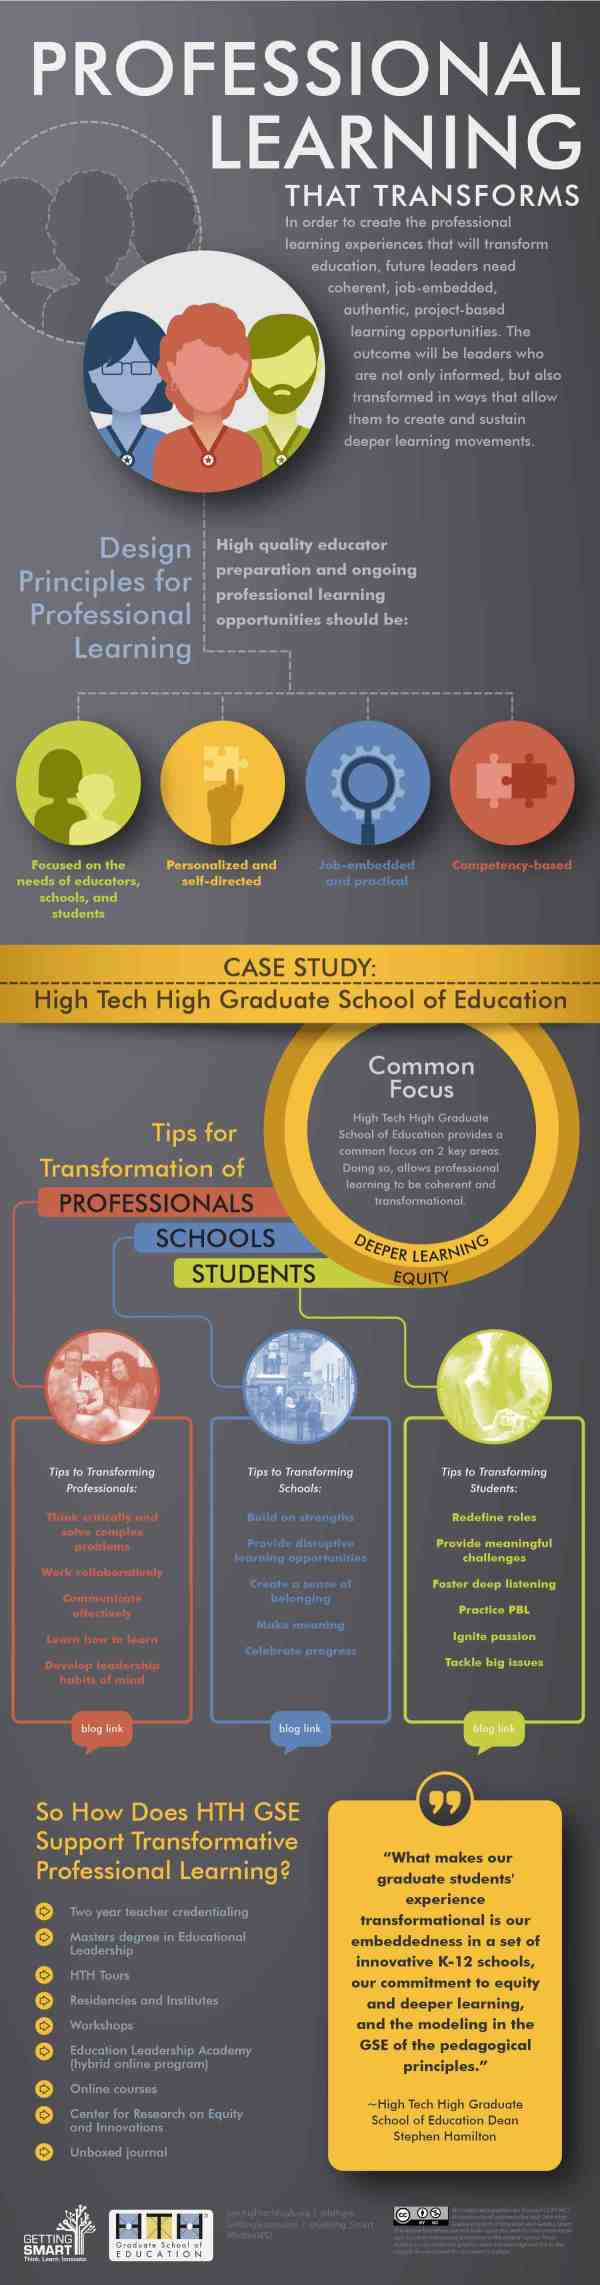 Infographic Professional Learning Transforms